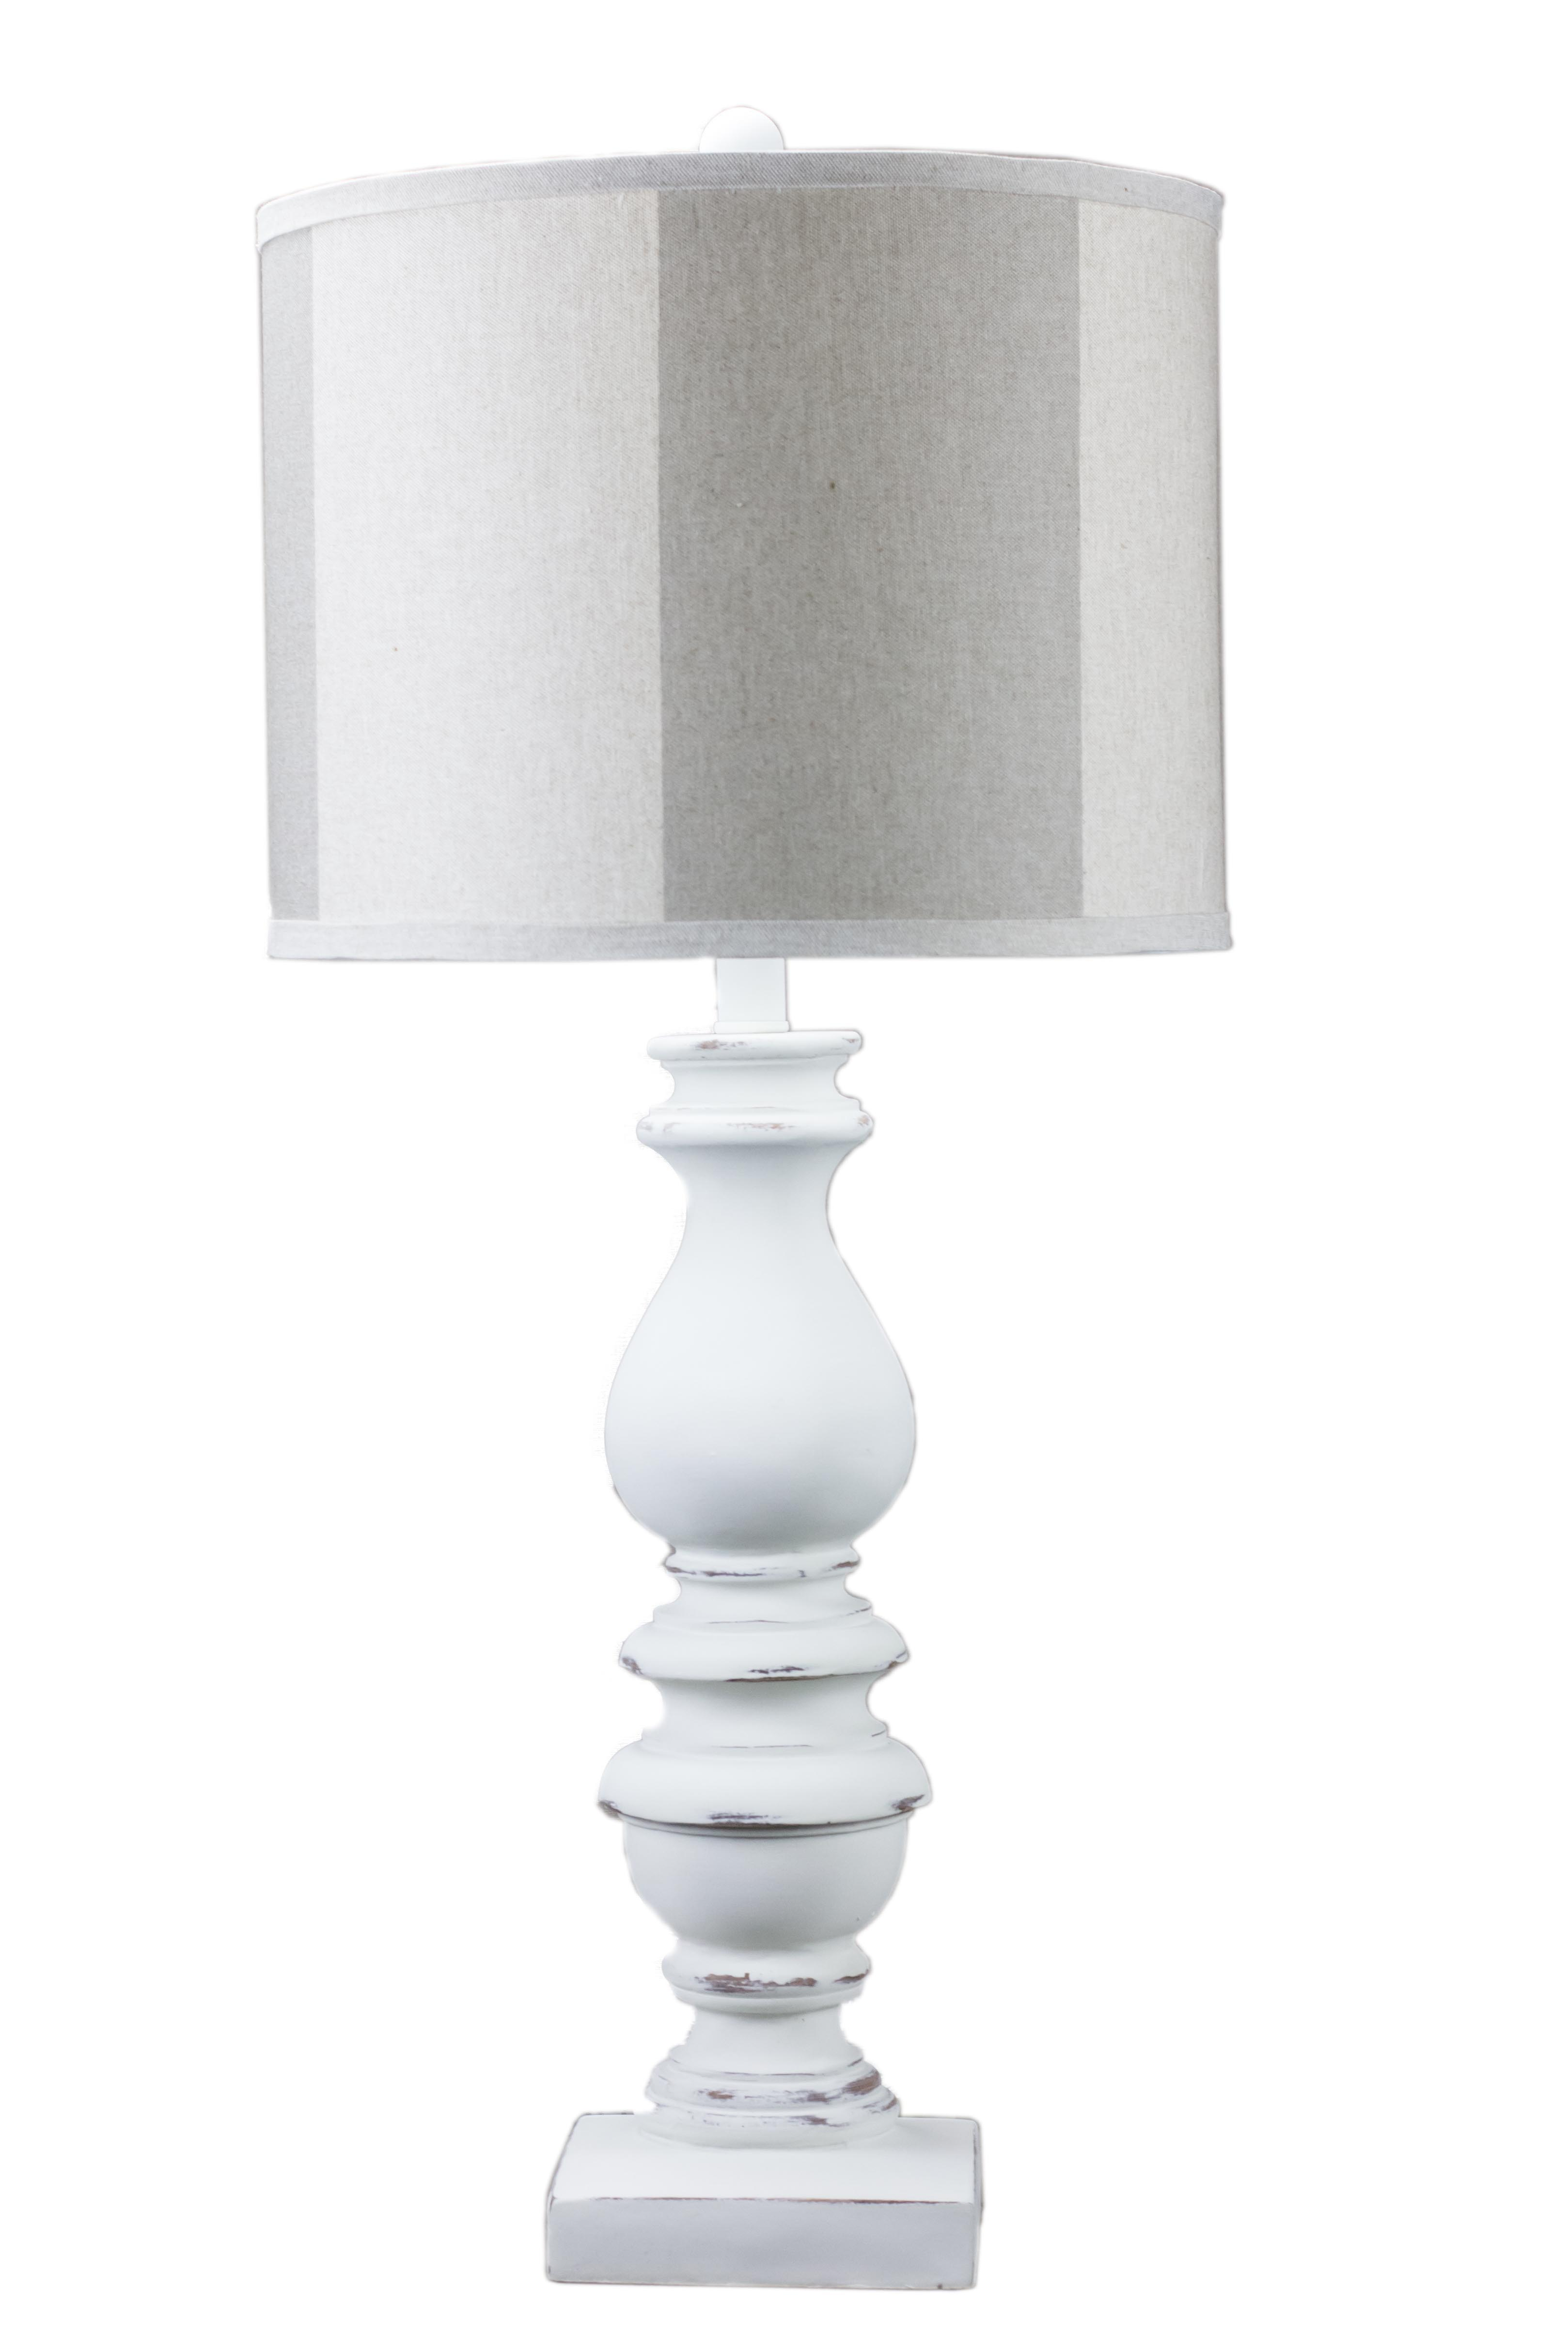 Picture of: Bishop White 31 Table Lamp With Cabana Grey Shade L1968wh U8 Wholesale Lamps Shades Bulbs Ahs Lighting Wholesaler Value Priced Accent Floor Table Lamps With Matching Shades